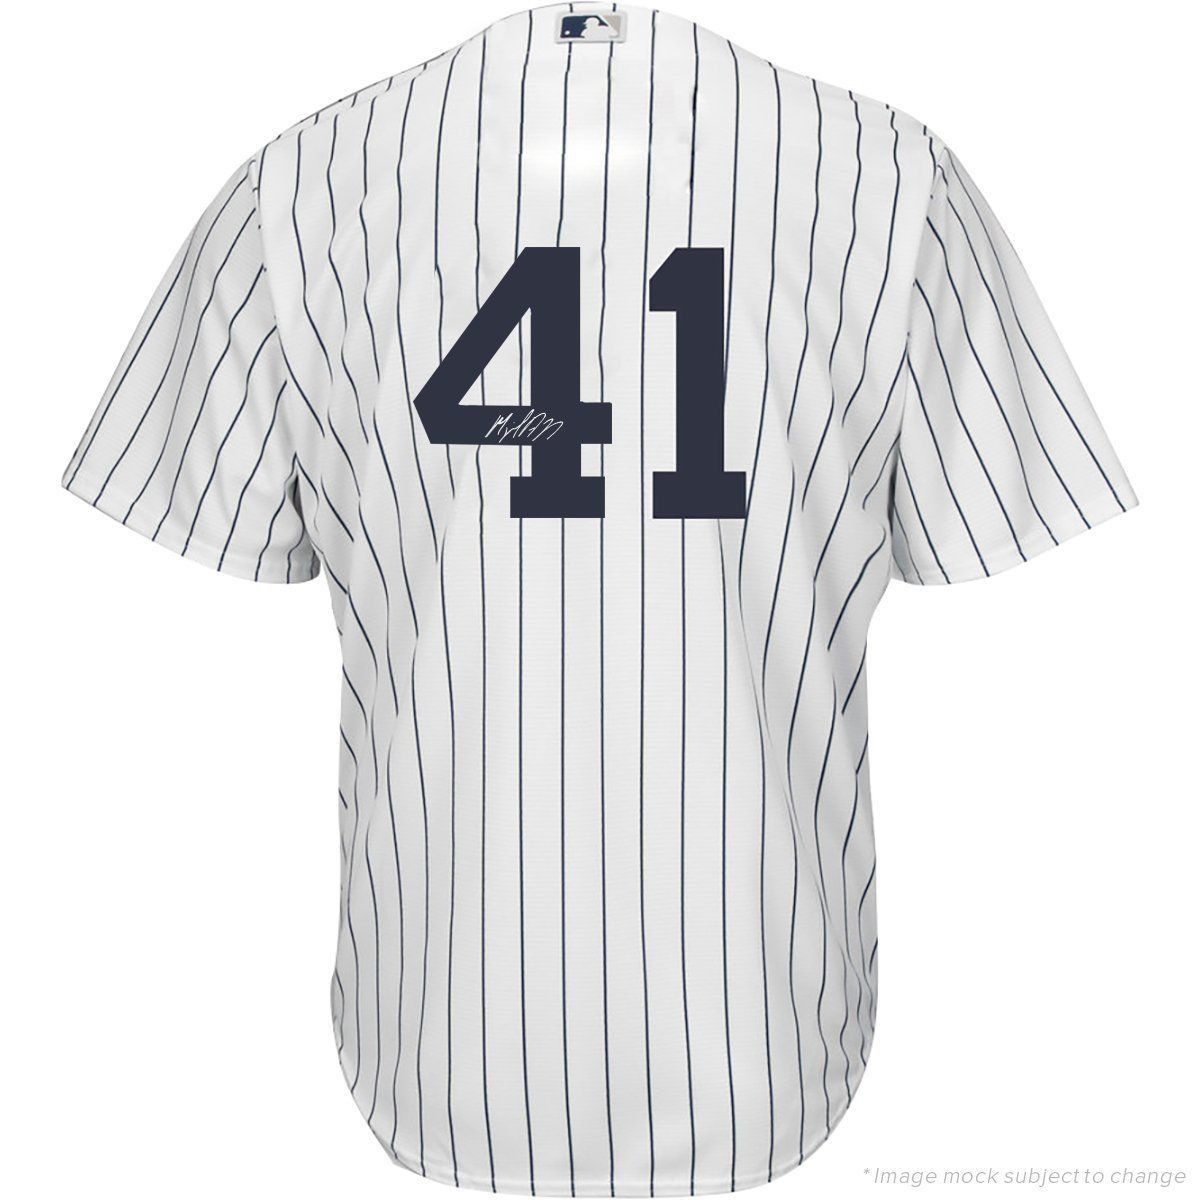 online store d20be d2e56 MIGUEL ANDUJAR Autographed New York Yankees Authentic Home Jersey STEINER